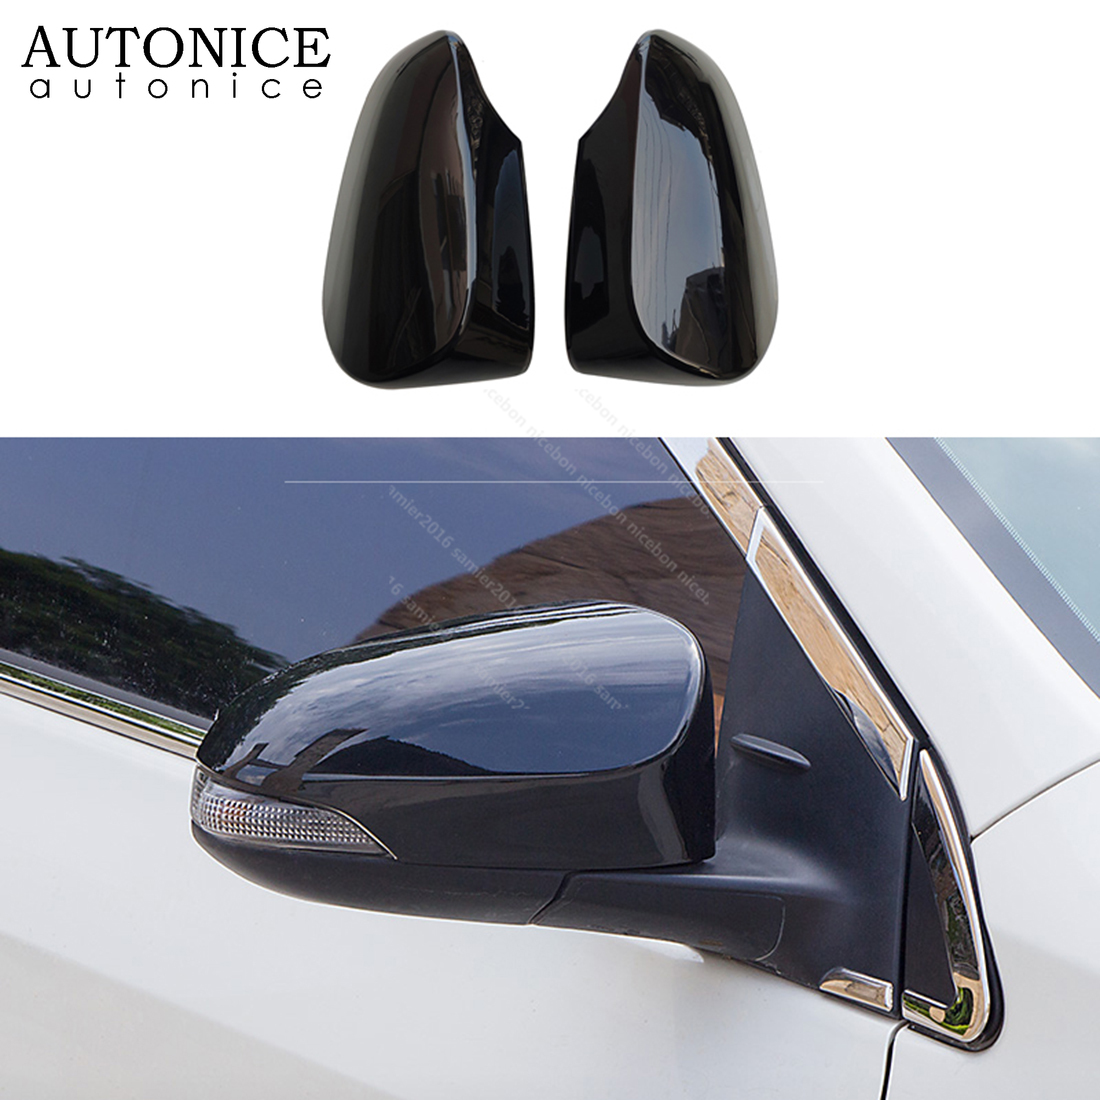 2pc shiny black Rearview <font><b>Mirrors</b></font> Cover Cup fit for <font><b>toyota</b></font> Avalon Venza corolla C-HR CHR <font><b>Auris</b></font> Yaris image